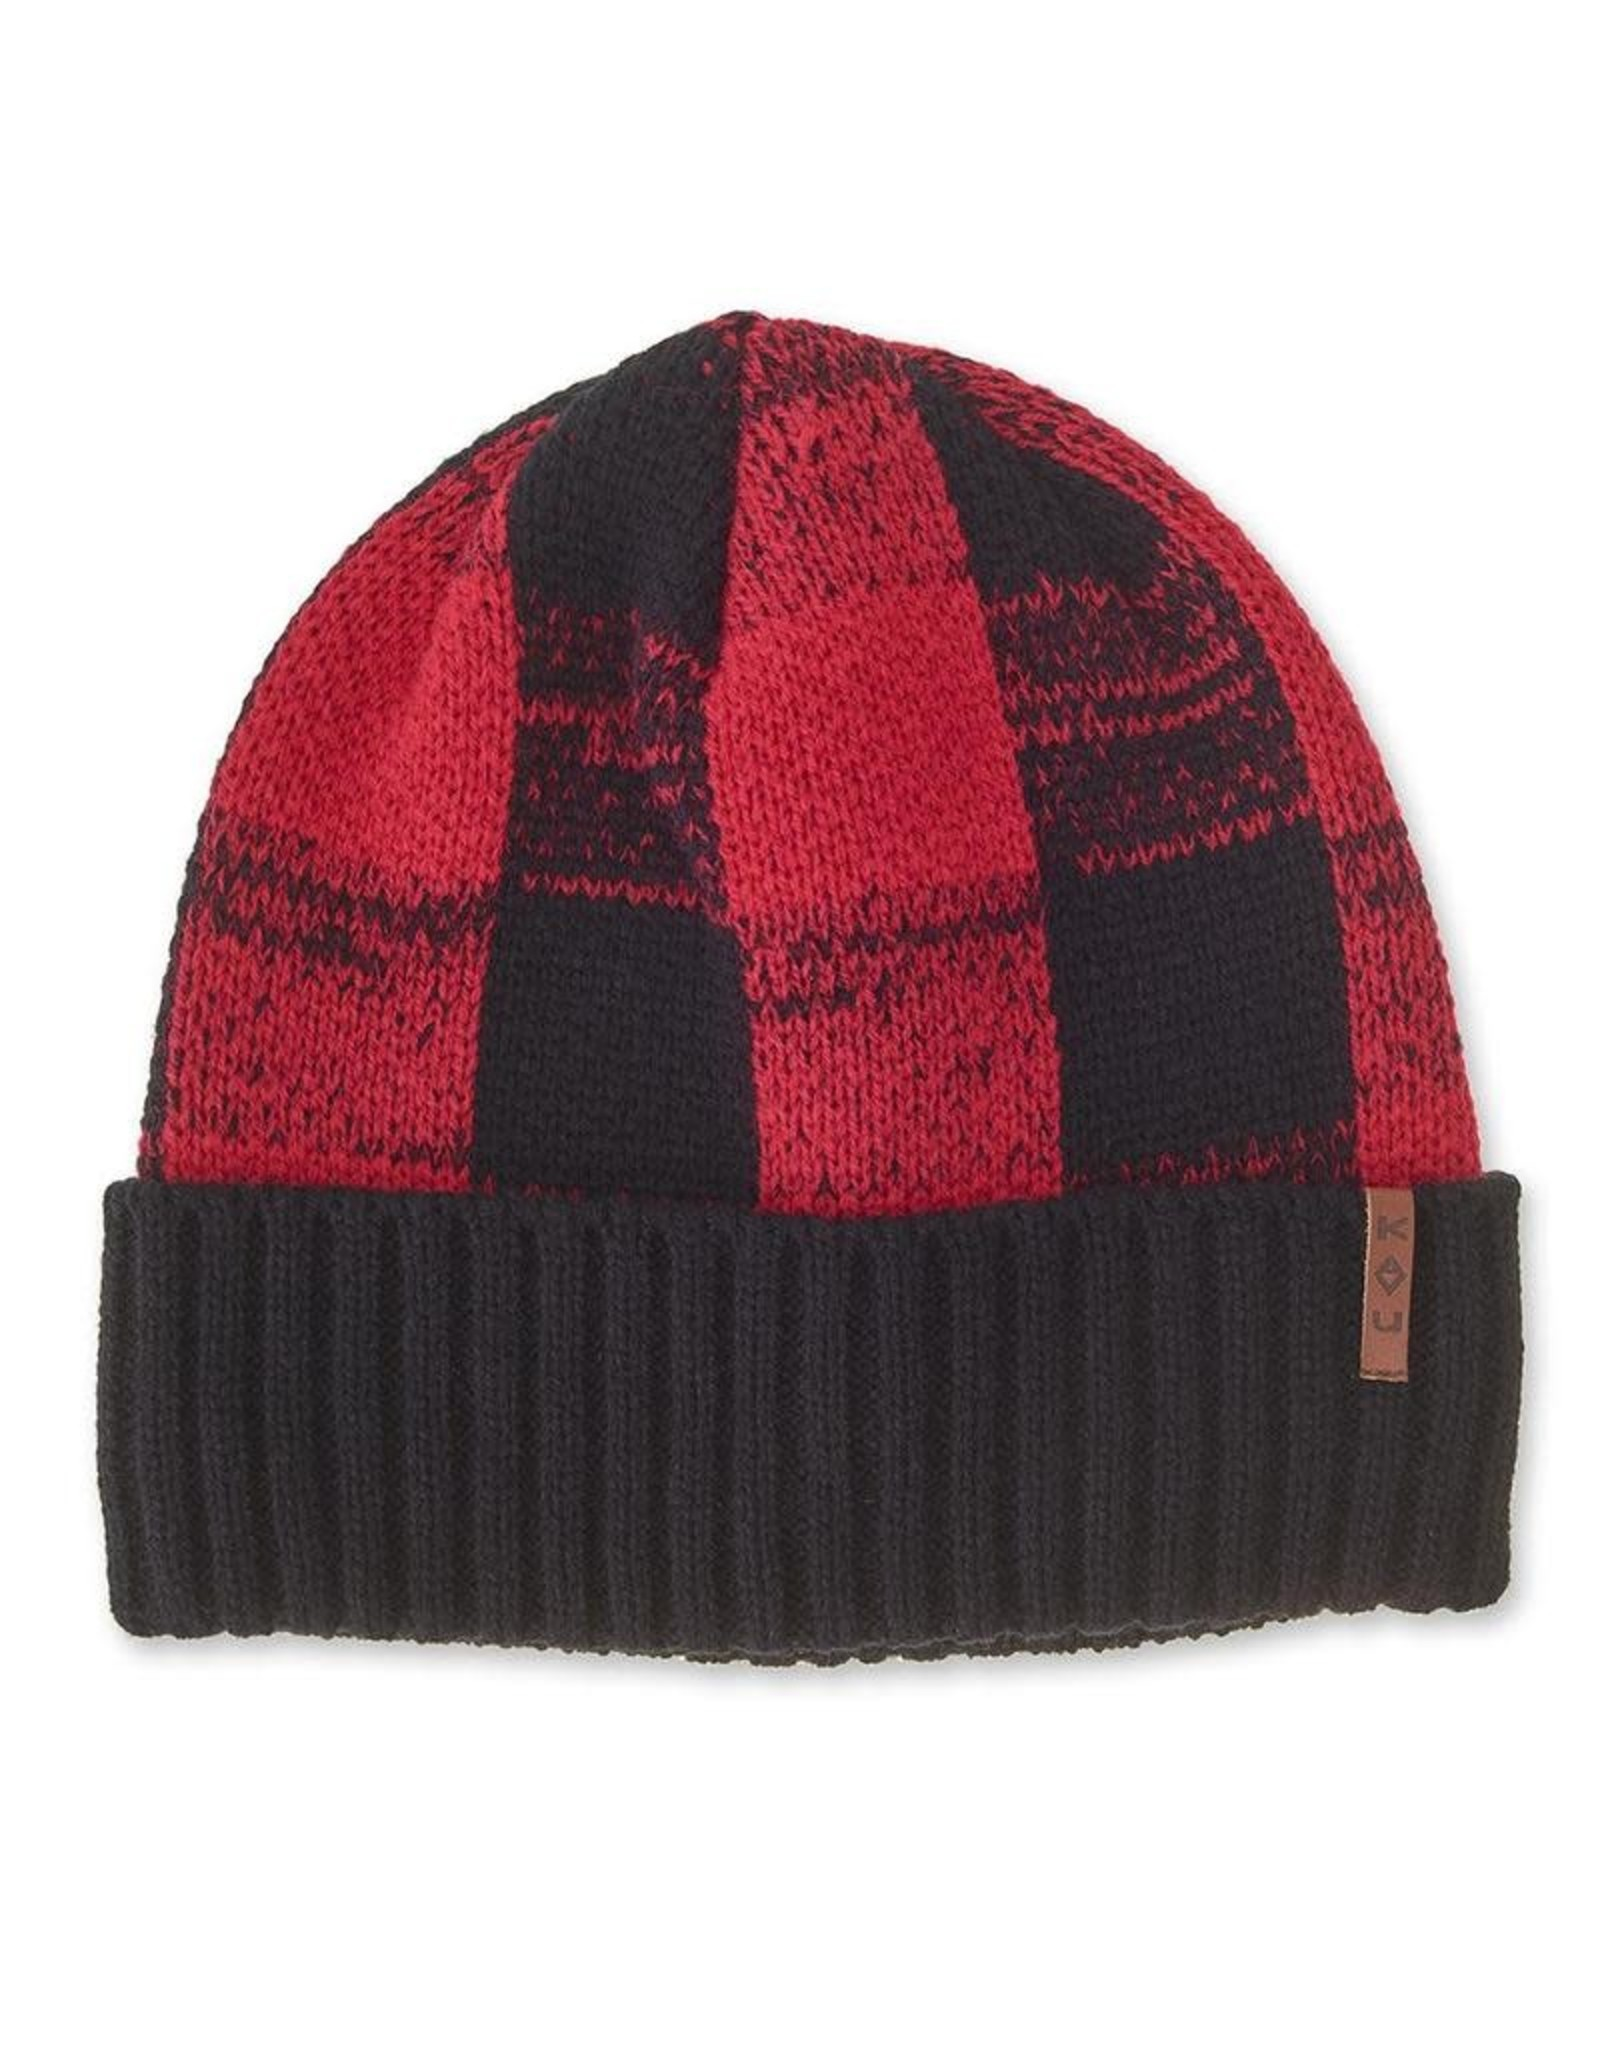 Kavu Kavu Creston Knit Cap: